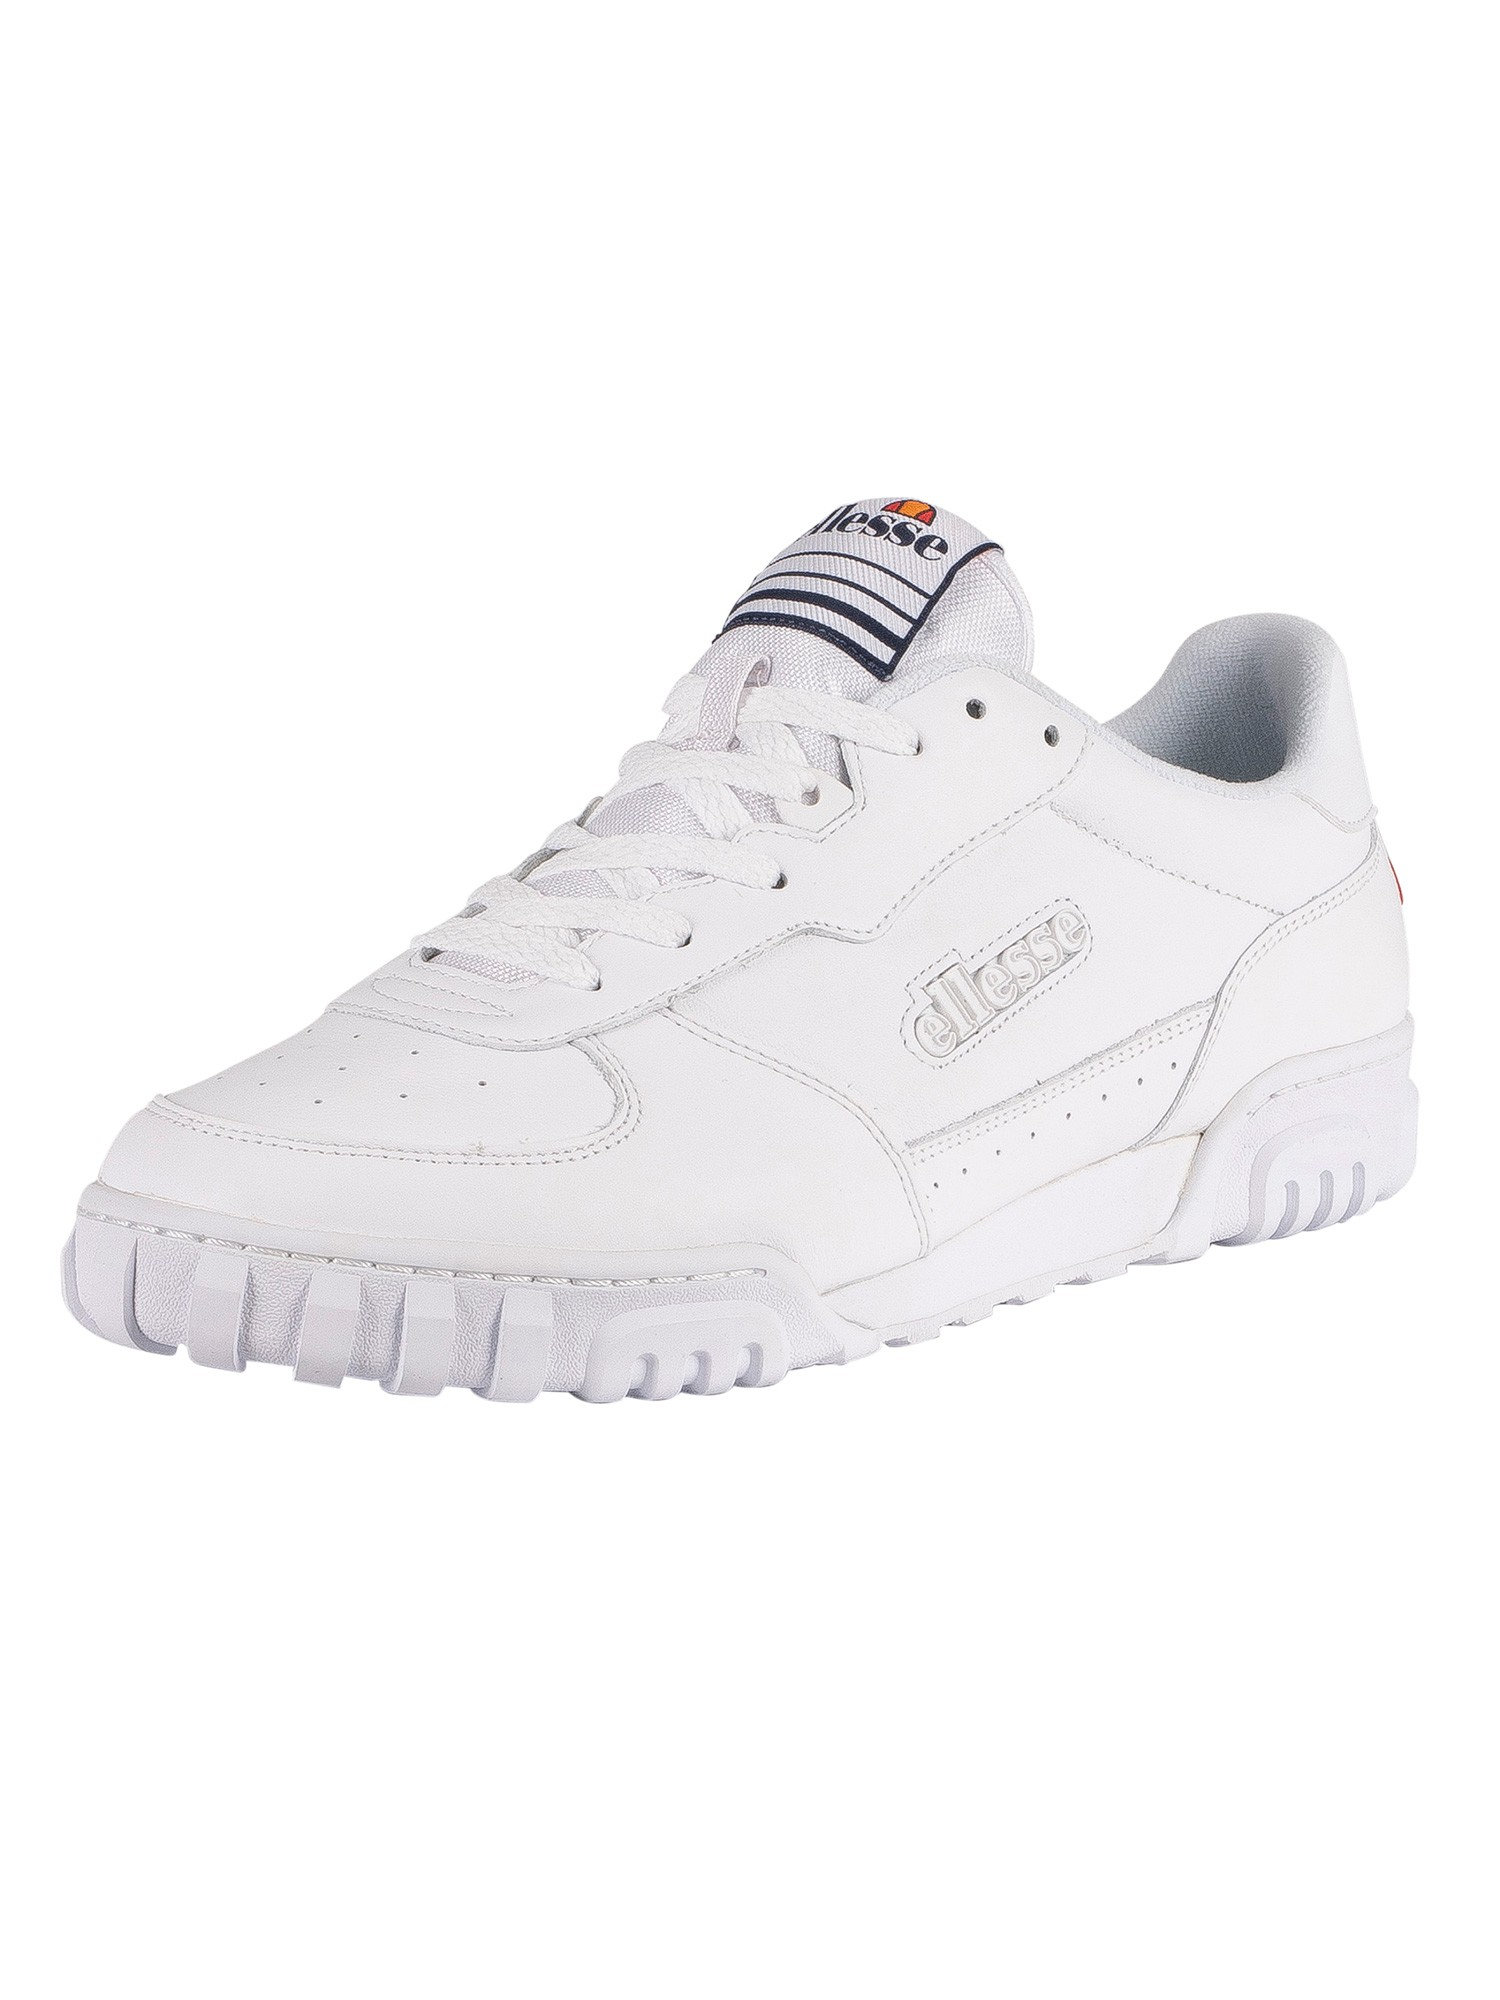 Ellesse Tanker Low Leather Trainers - White/White/Dark Blue